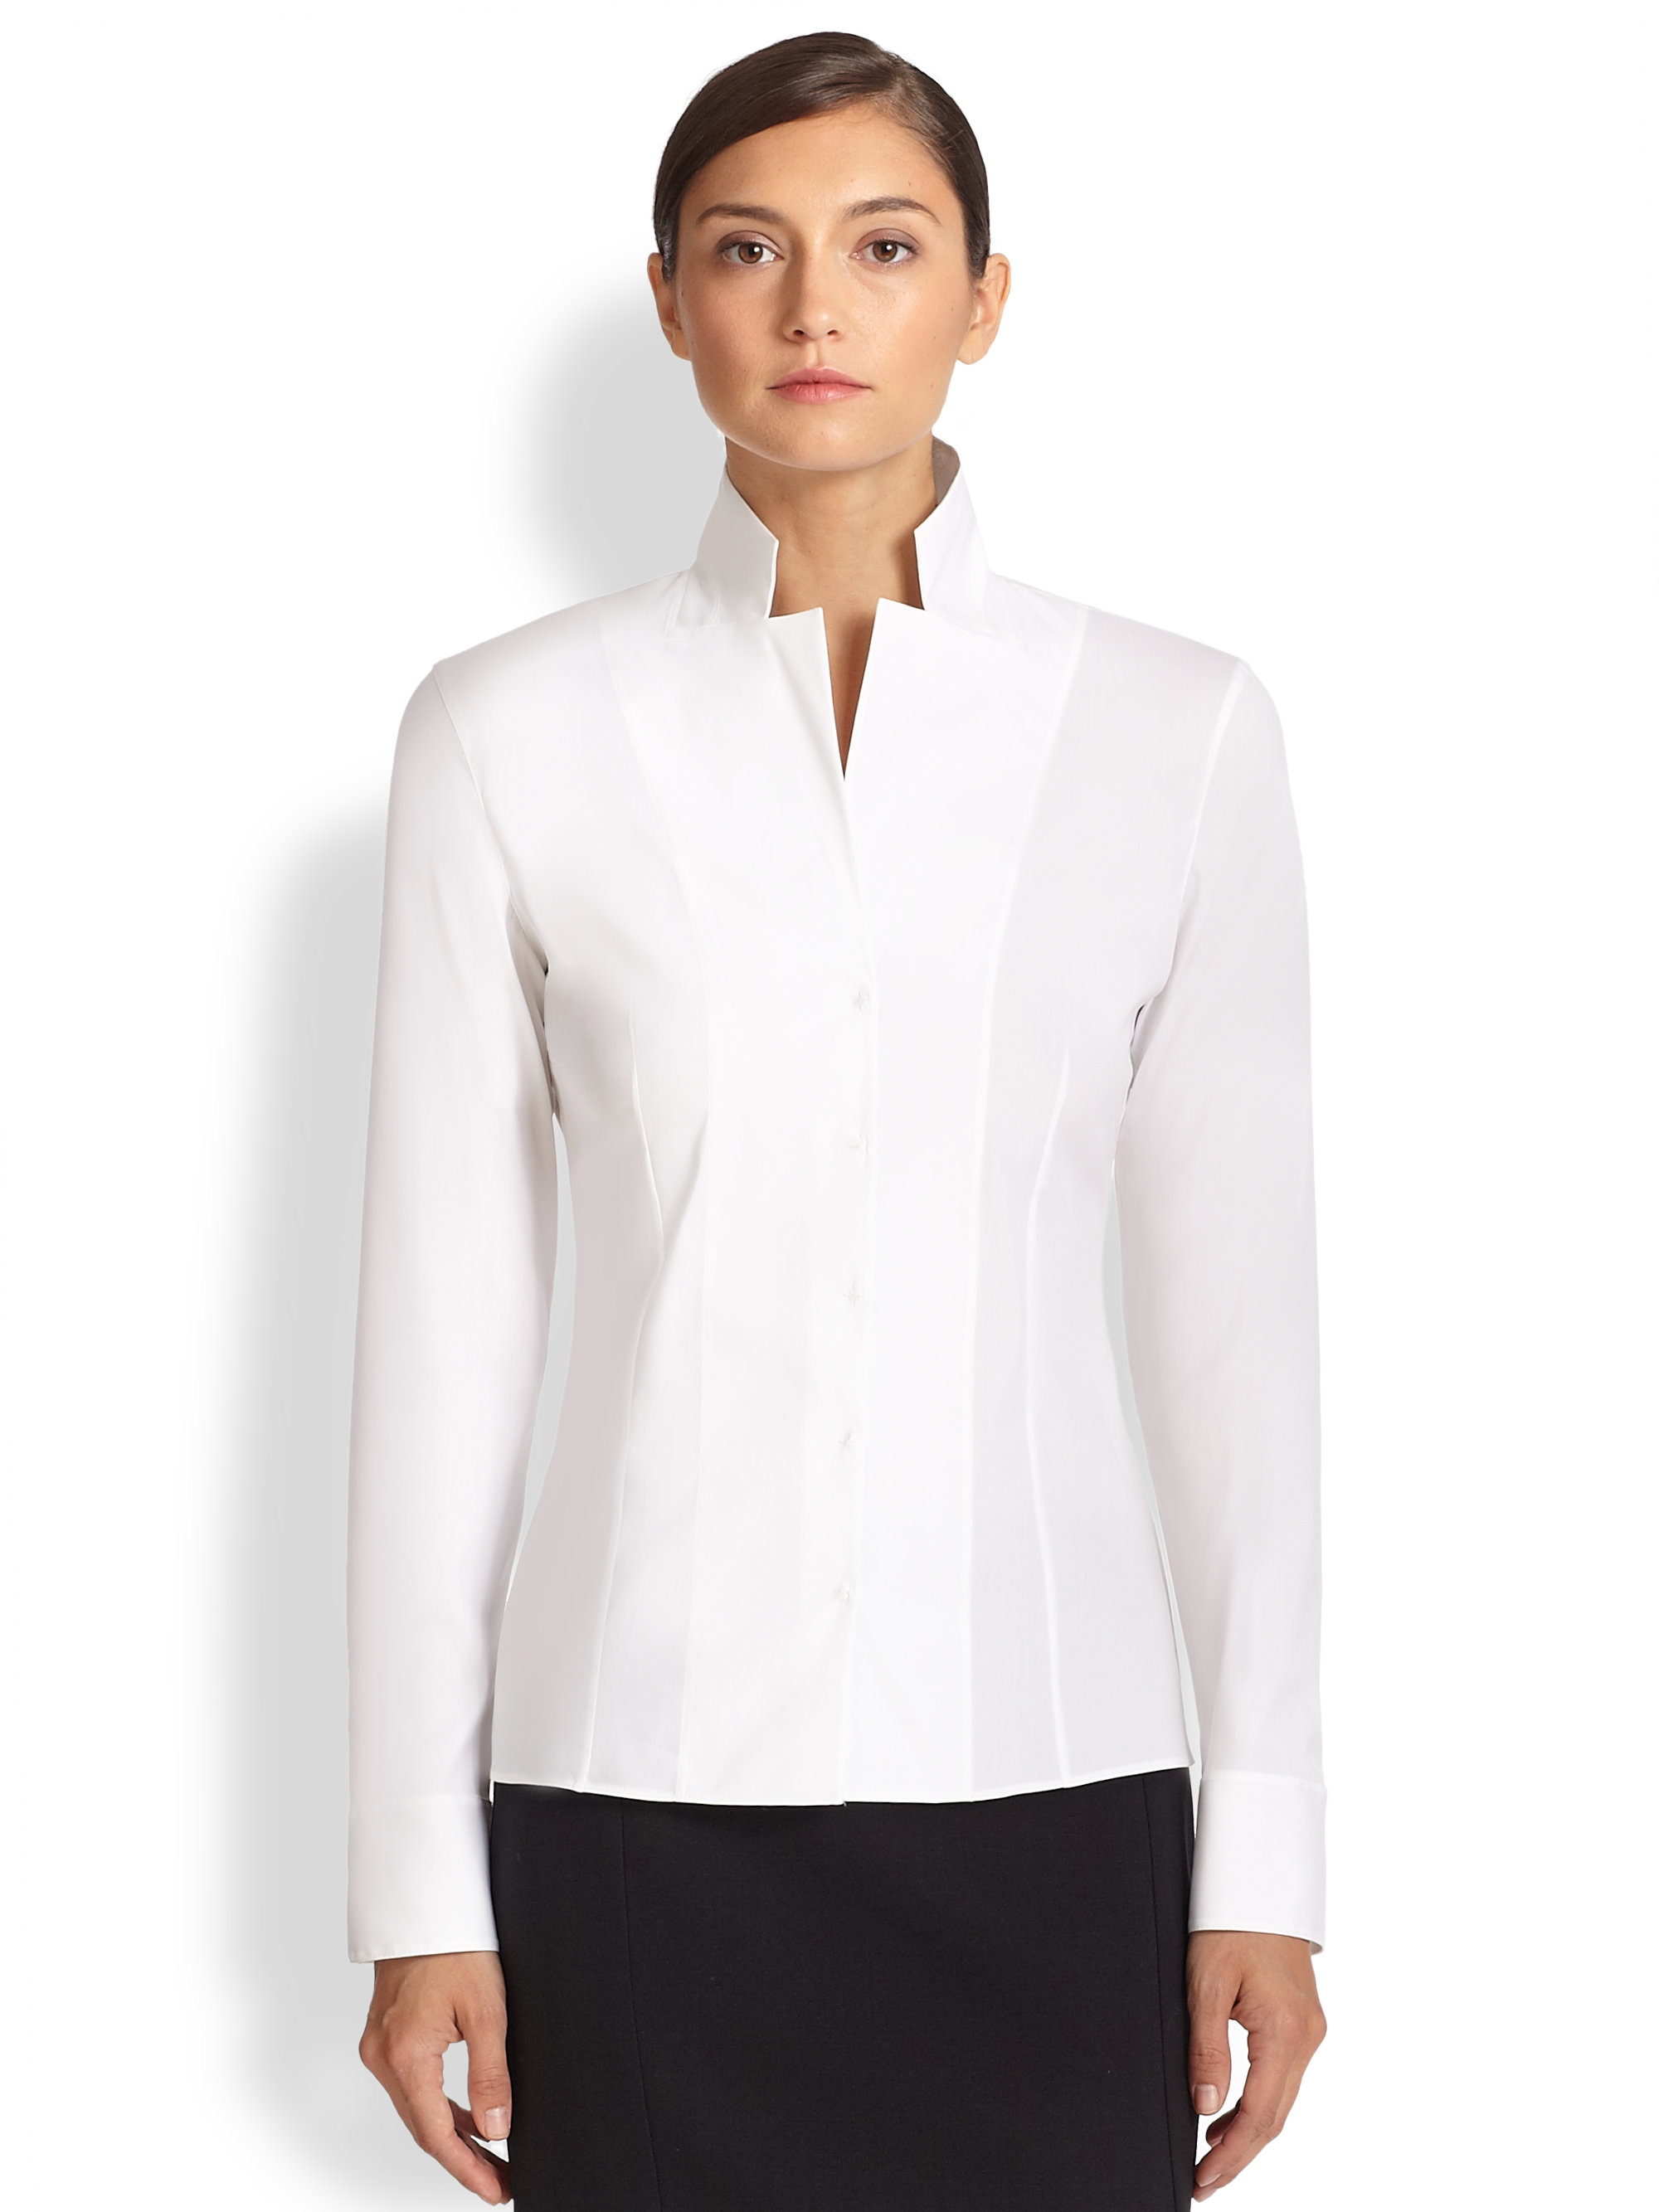 Find white blouses with black collar and cuffs at ShopStyle. Shop the latest collection of white blouses with black collar and cuffs from the most.